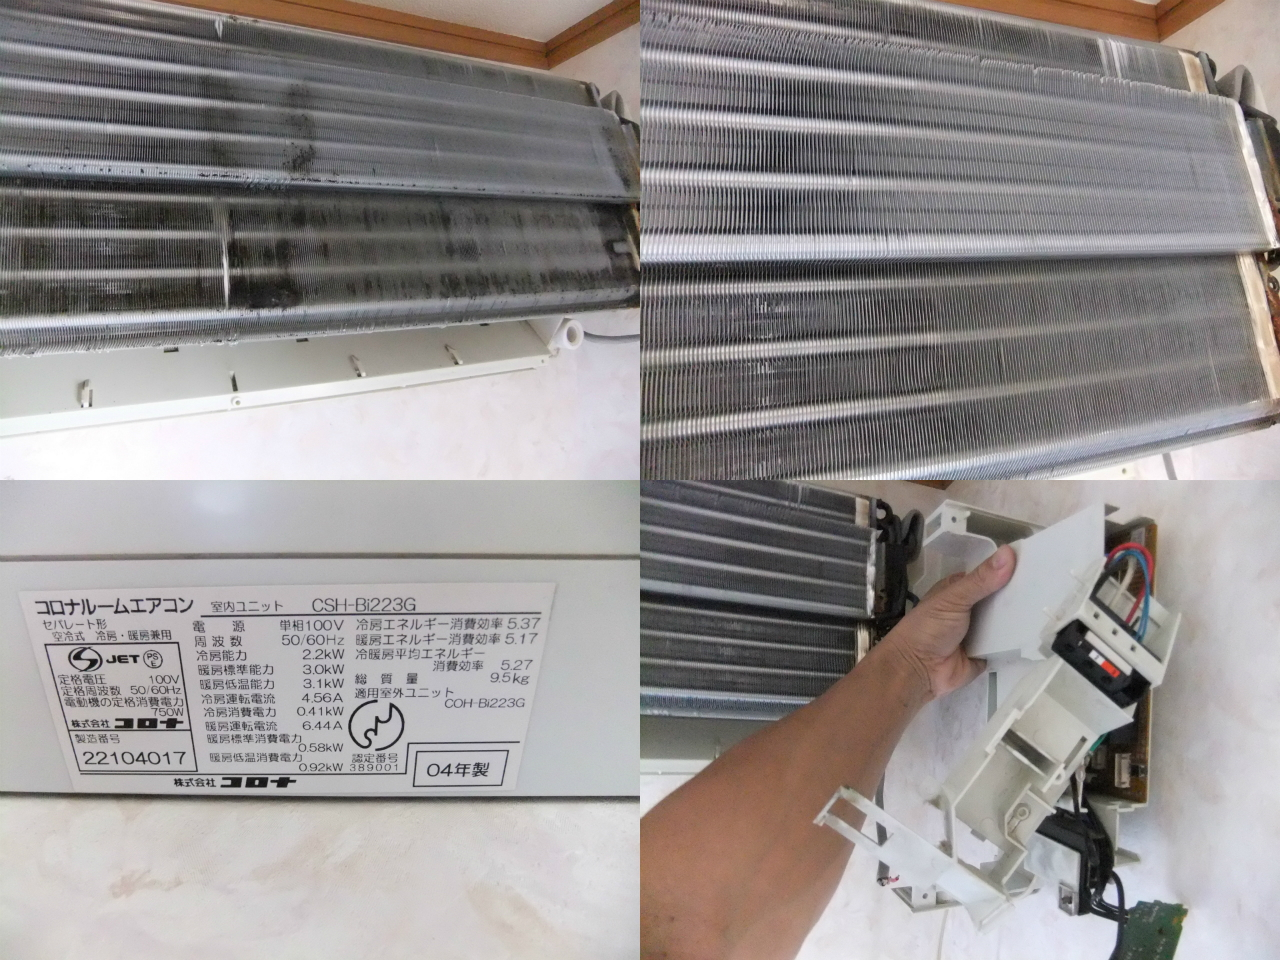 http://ajras.net/images/110711-aircon2.jpg